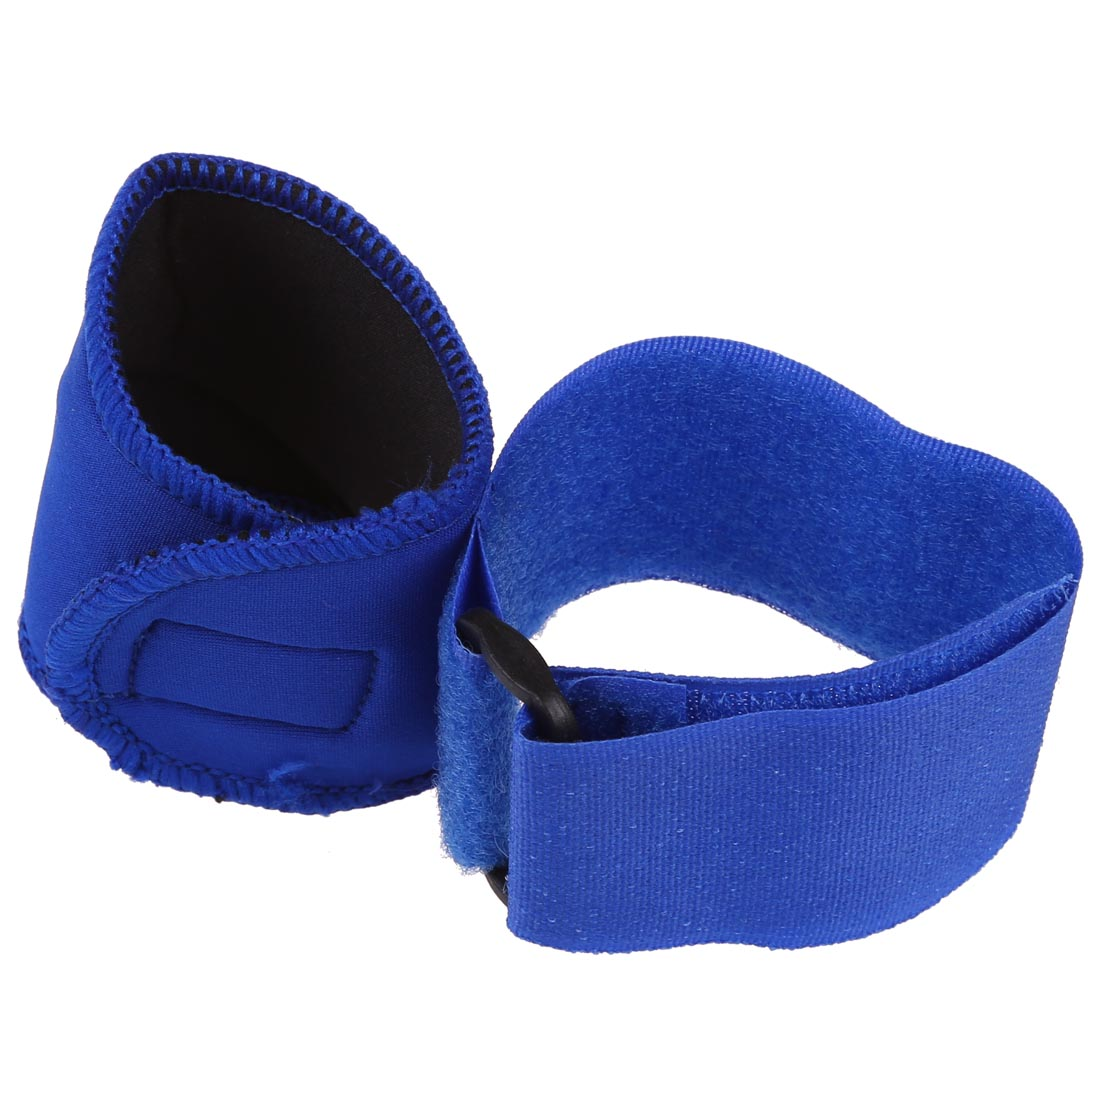 Universal Wrist Brace Wrist Strap Support Strengthens Strong Tendons and Muscles Gout Ligament Gym Breathable Design